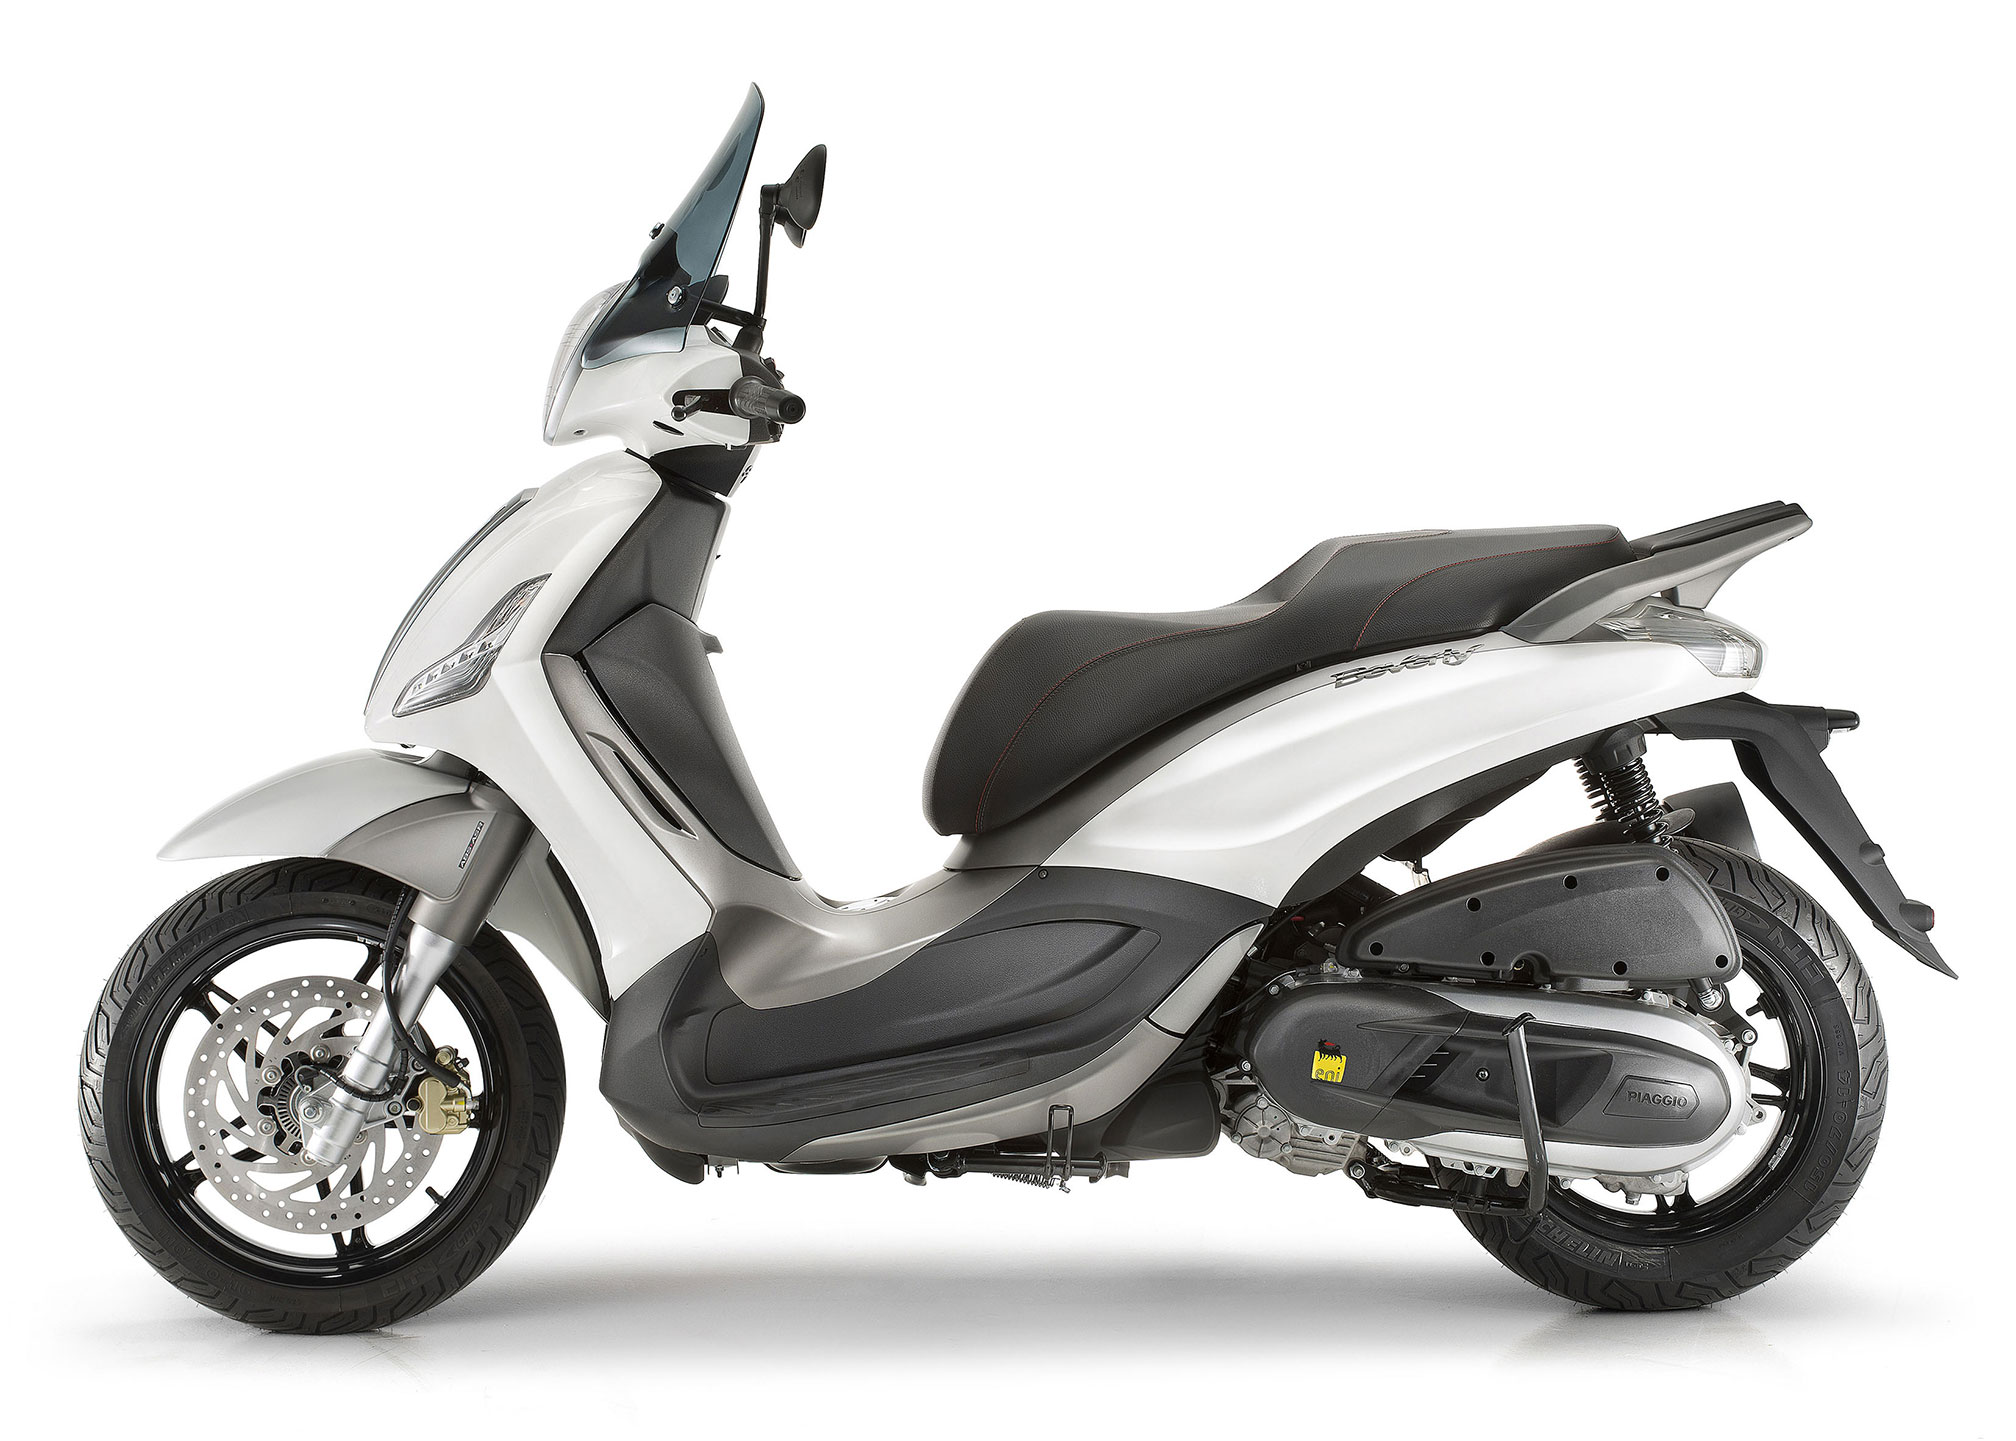 2016 Piaggio BV350 ABS Review